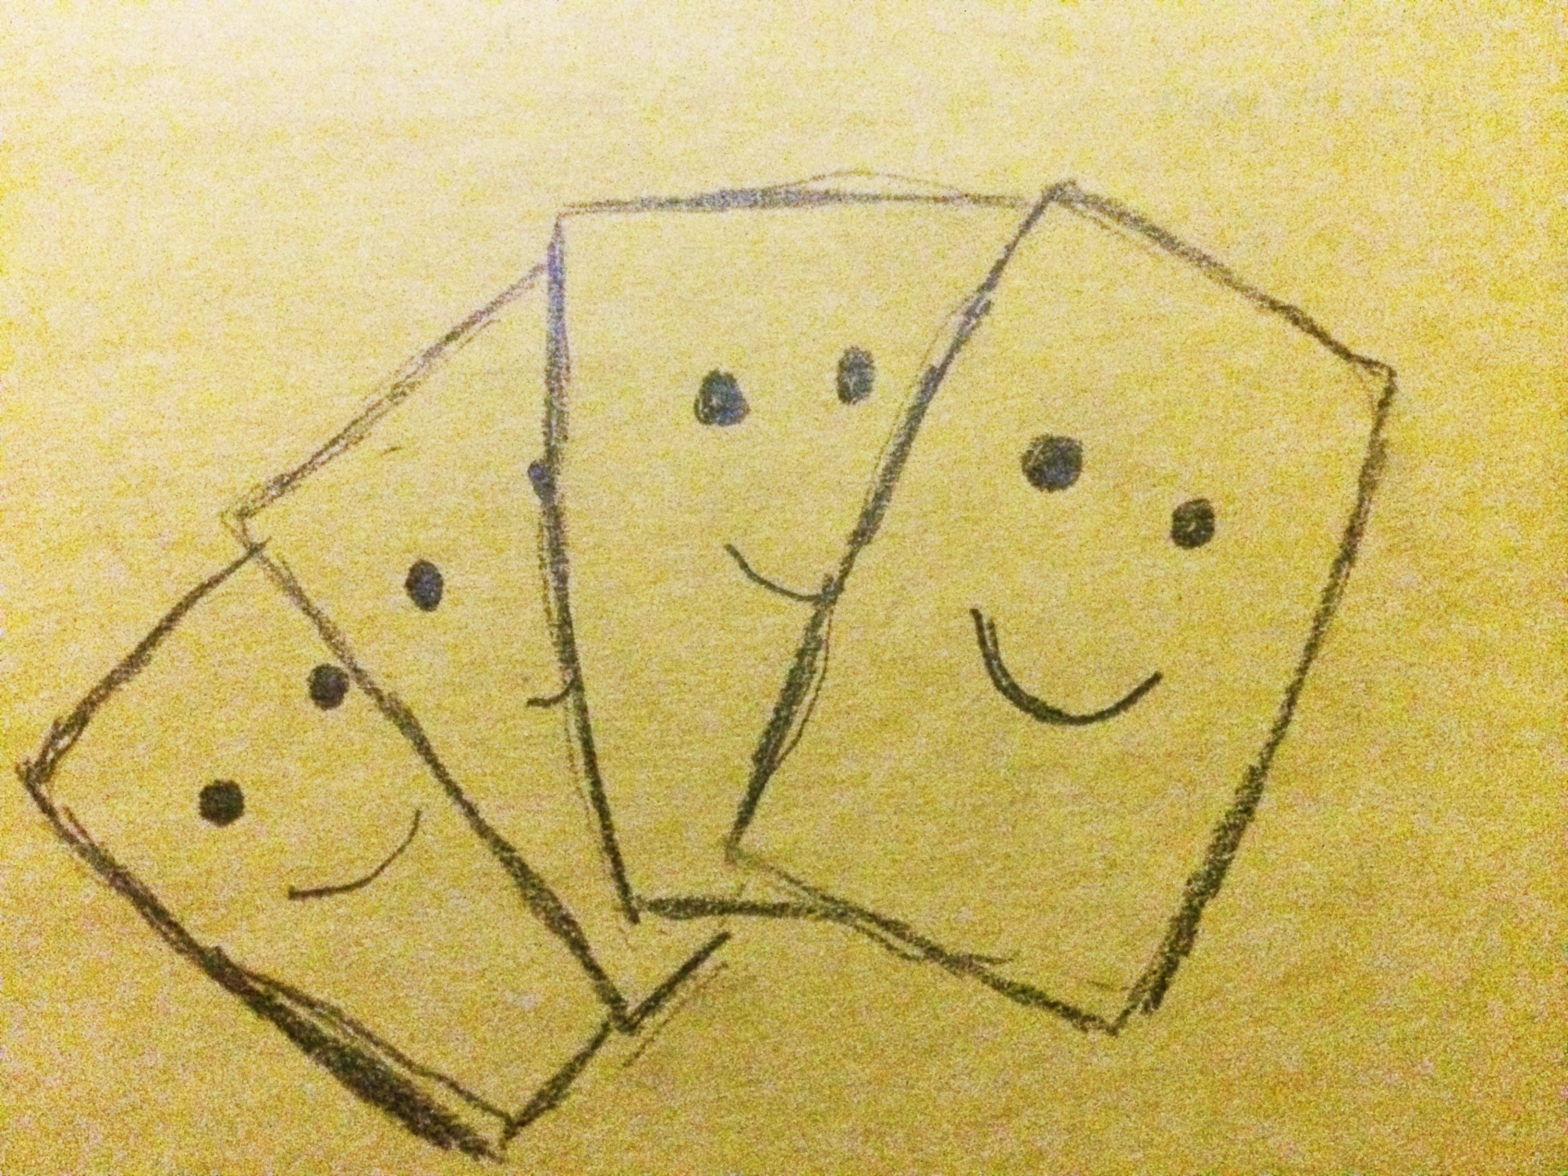 Sketch of a deck of cards